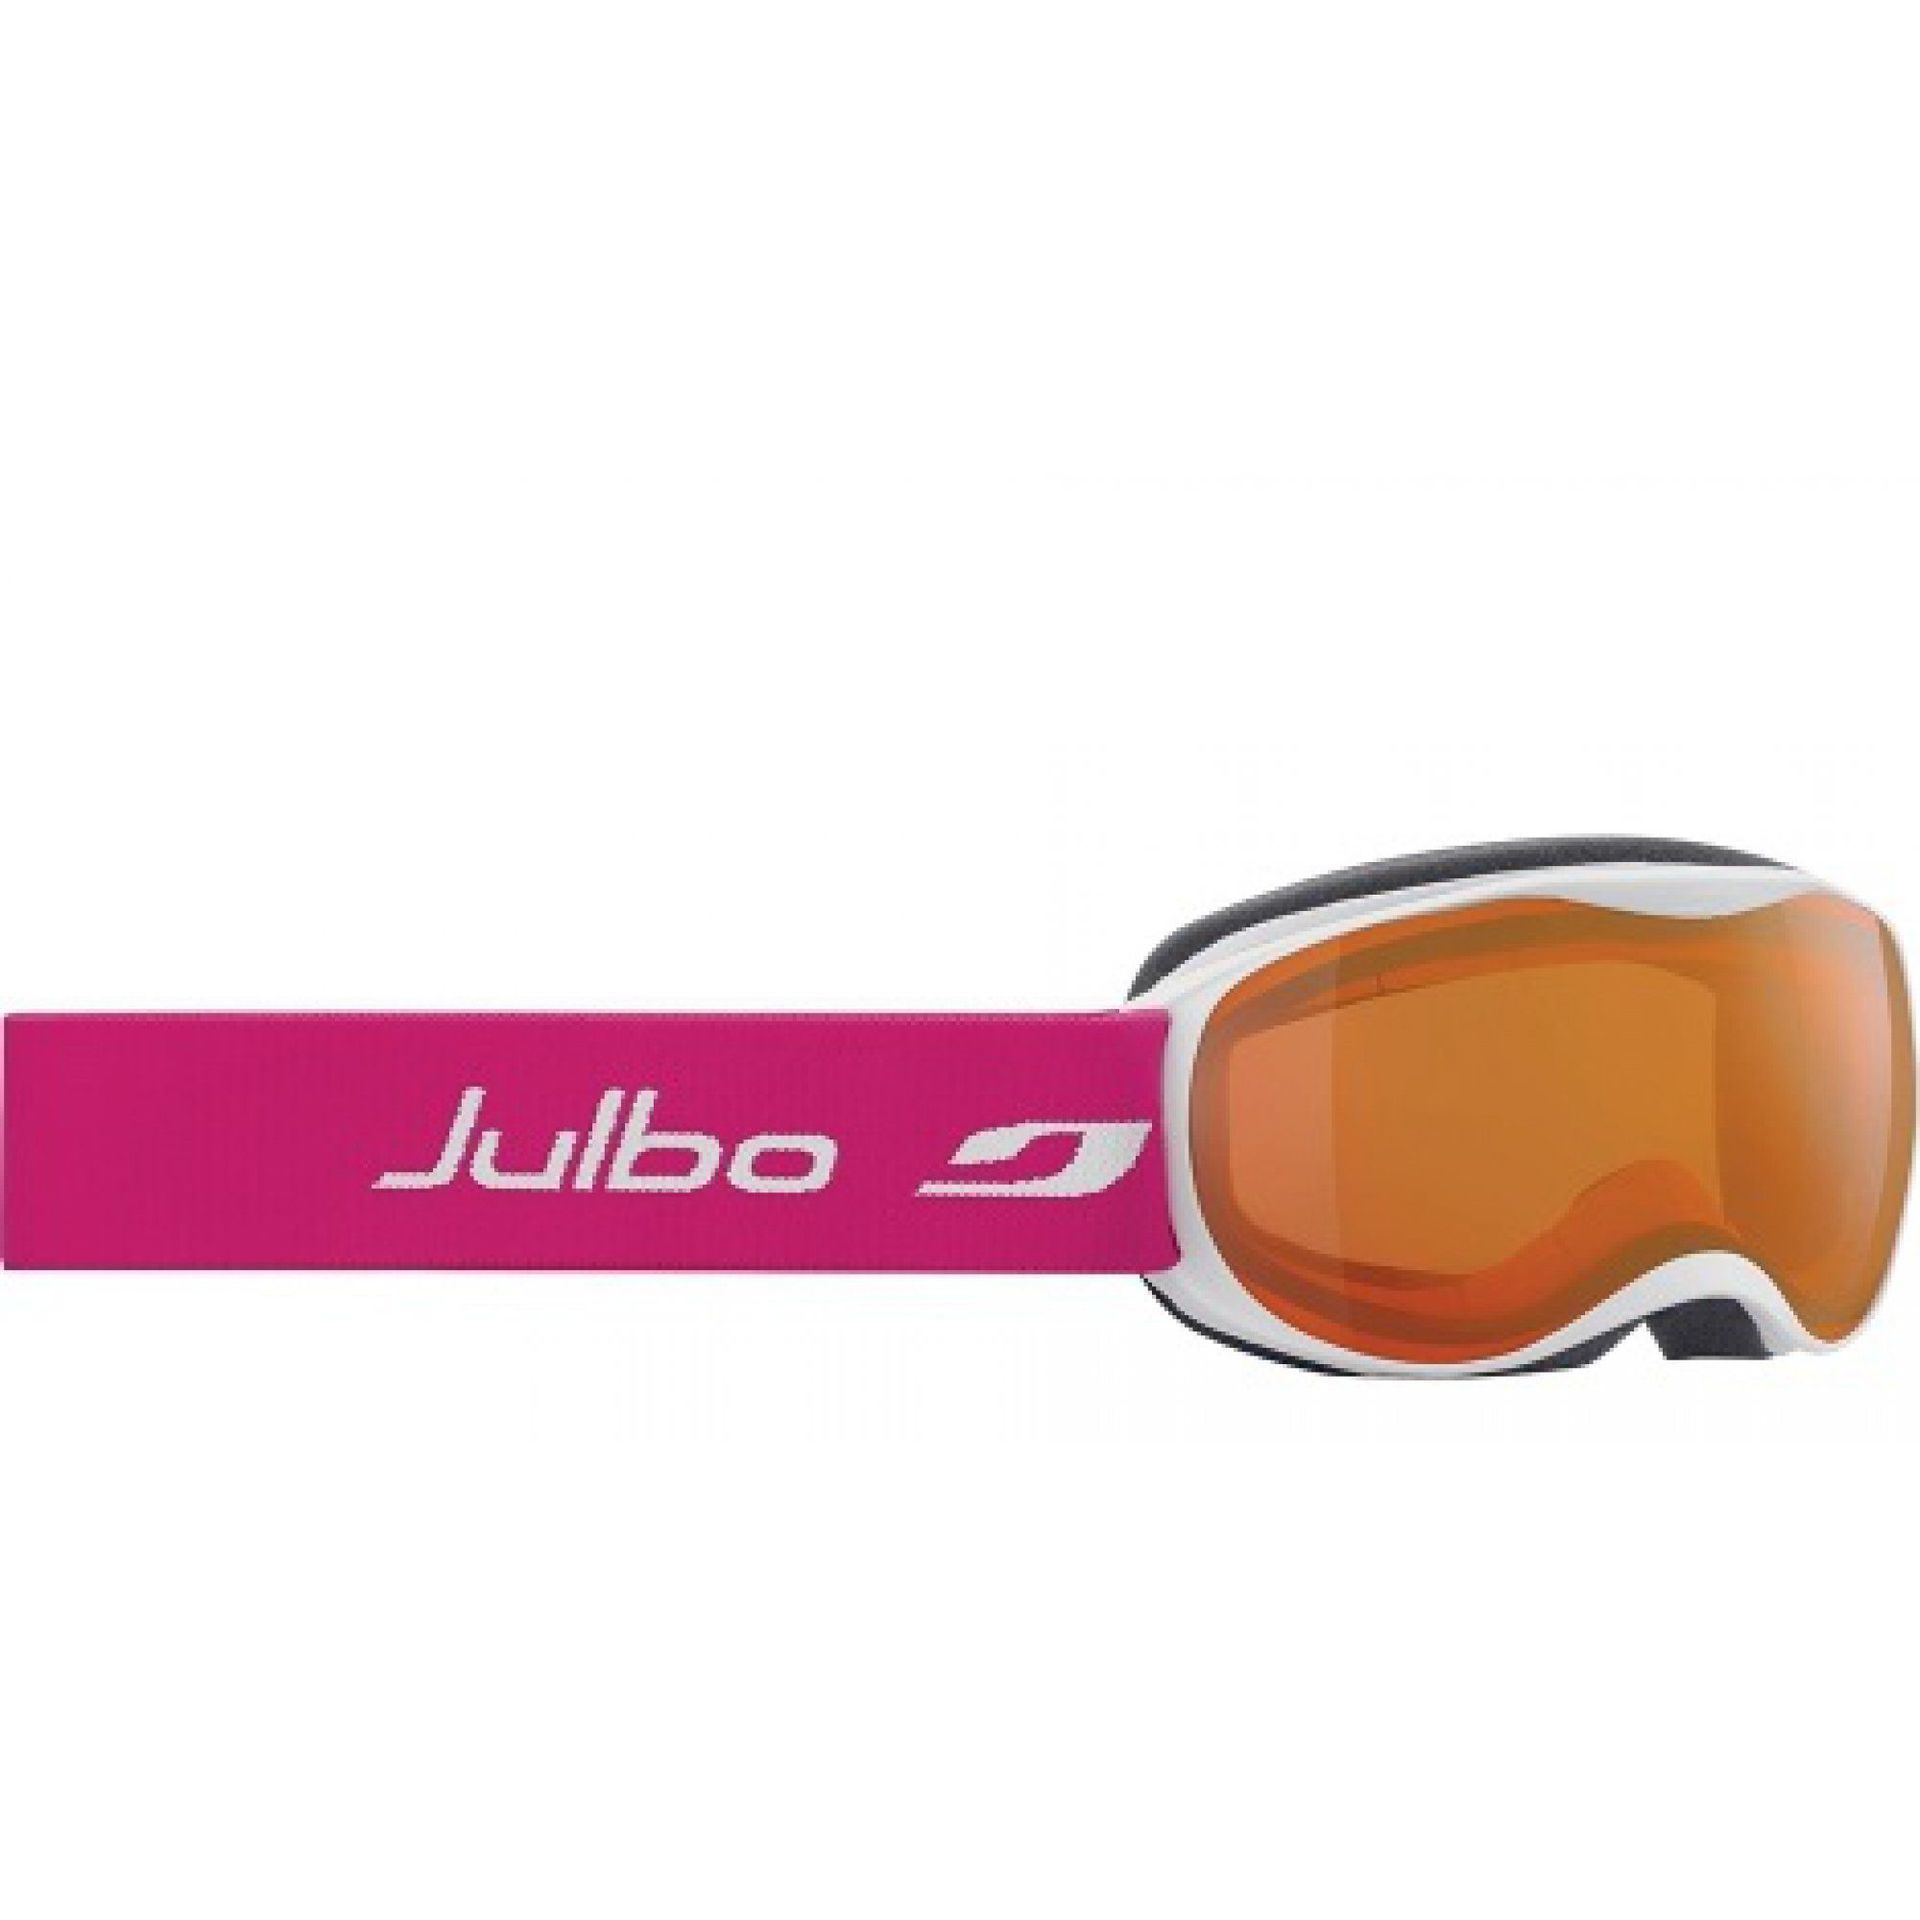 GOGLE JULBO ATMO WHITE|FUCHSIA|ORANGE SCREEN SPECTRON